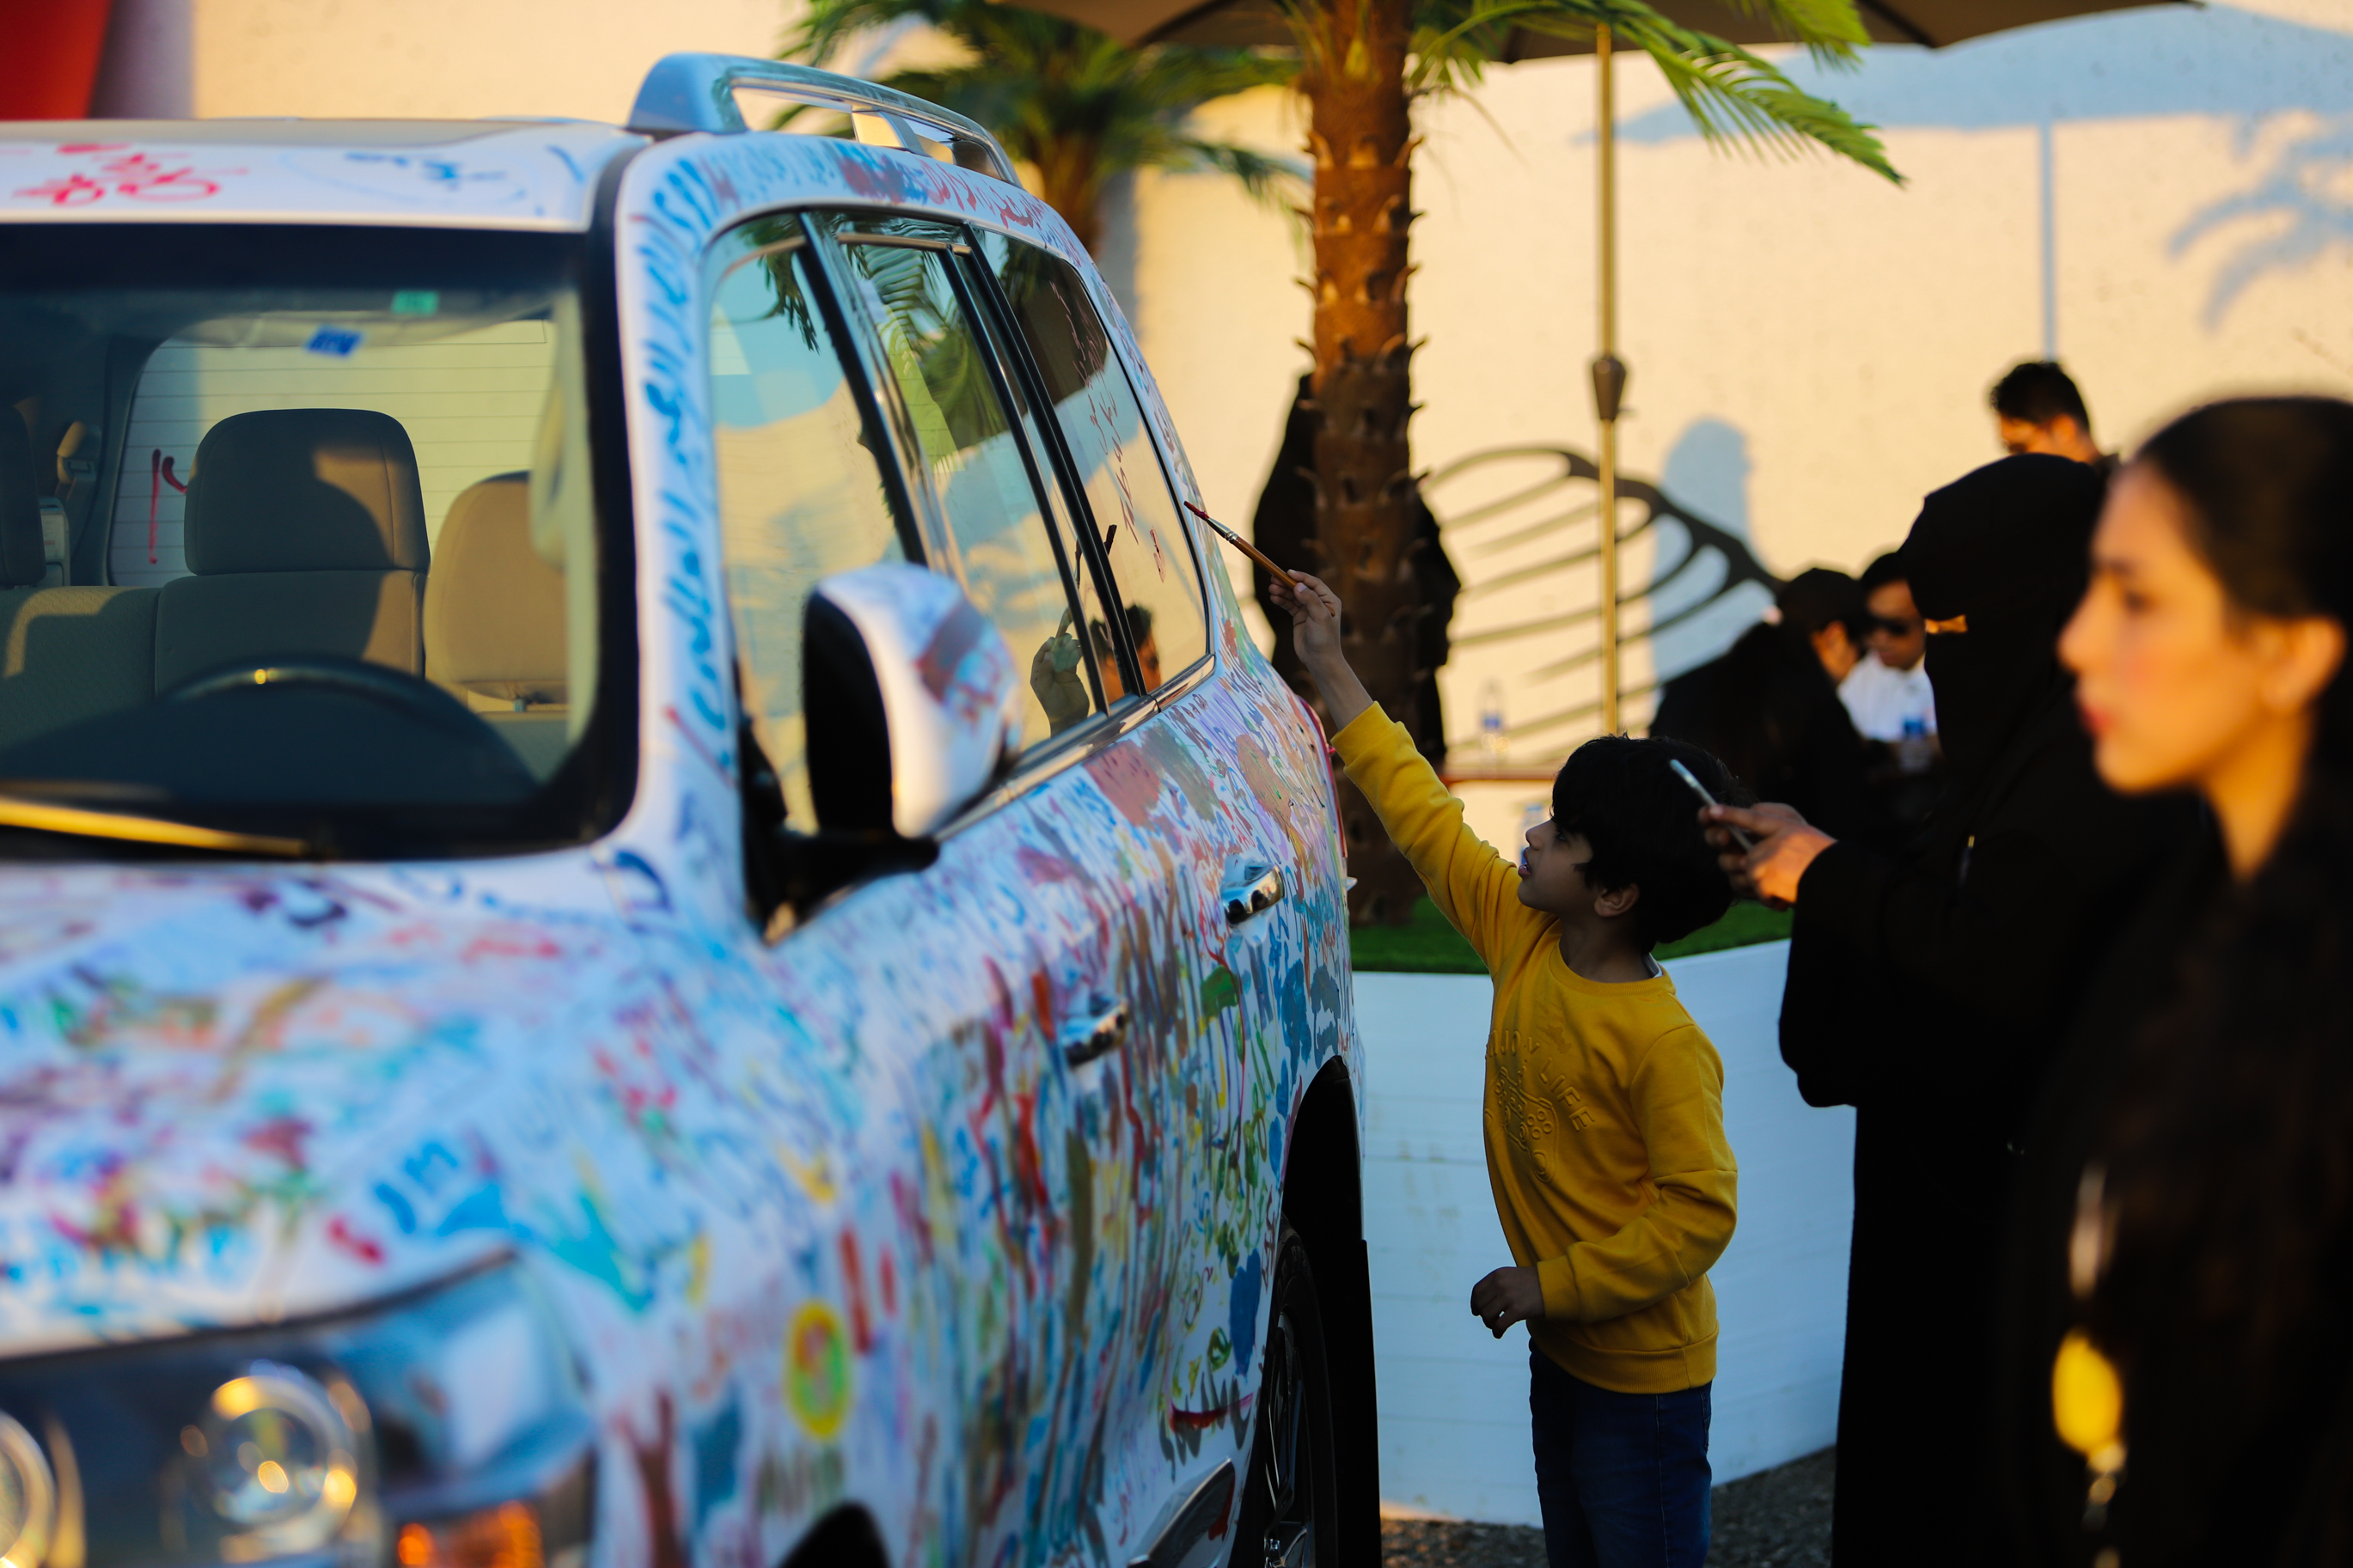 Event attendees were invited to memorialize their participation by writing their names and messages on a Land Cruiser car, in bright and colorful paint.